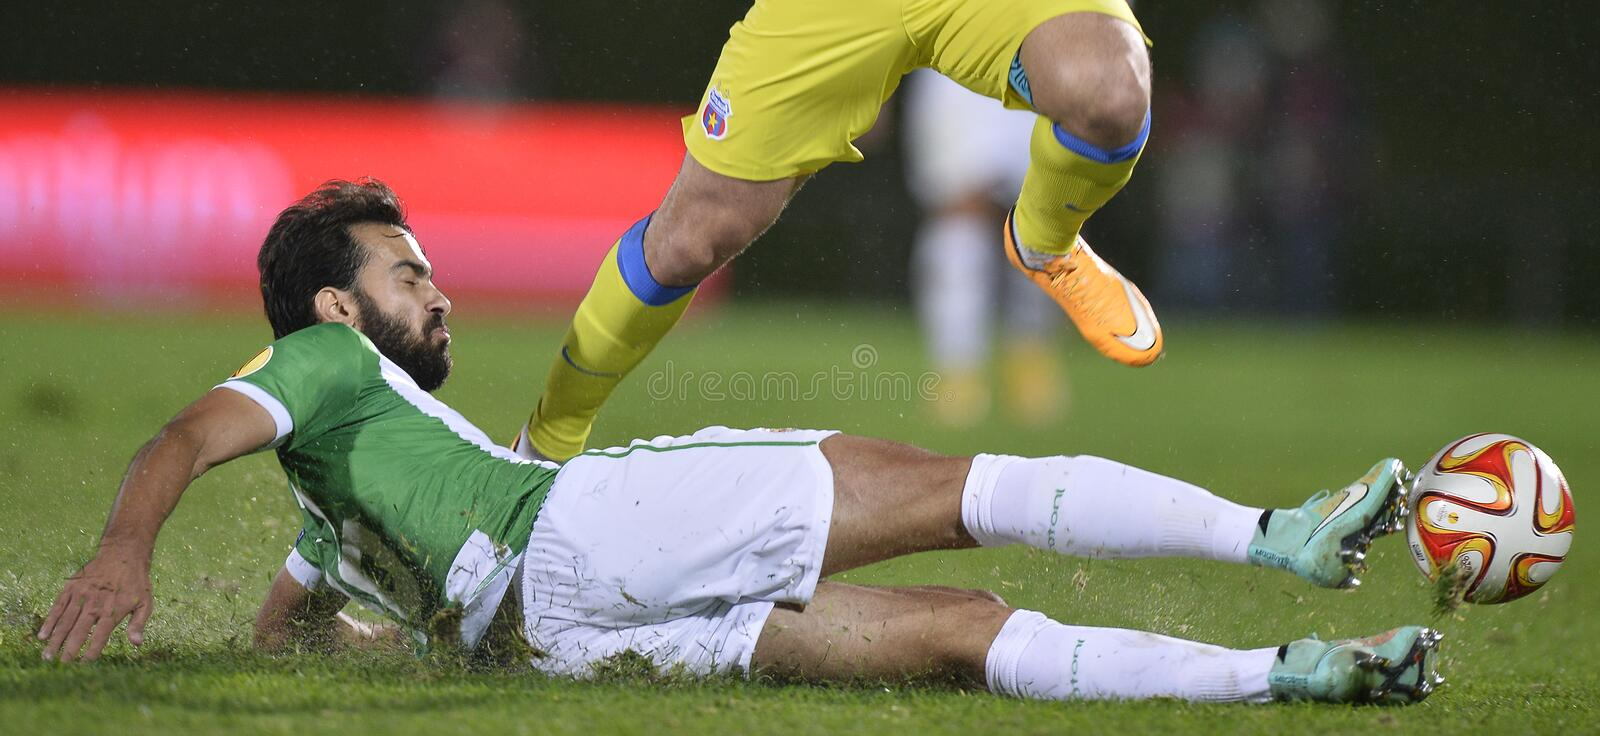 Football action - hard sliding tackle. Ricardo Jose Vaz Alves Monteiro, commonly known as Tarantini, player of Rio Ave Futebol Clube takles hard during the game royalty free stock images